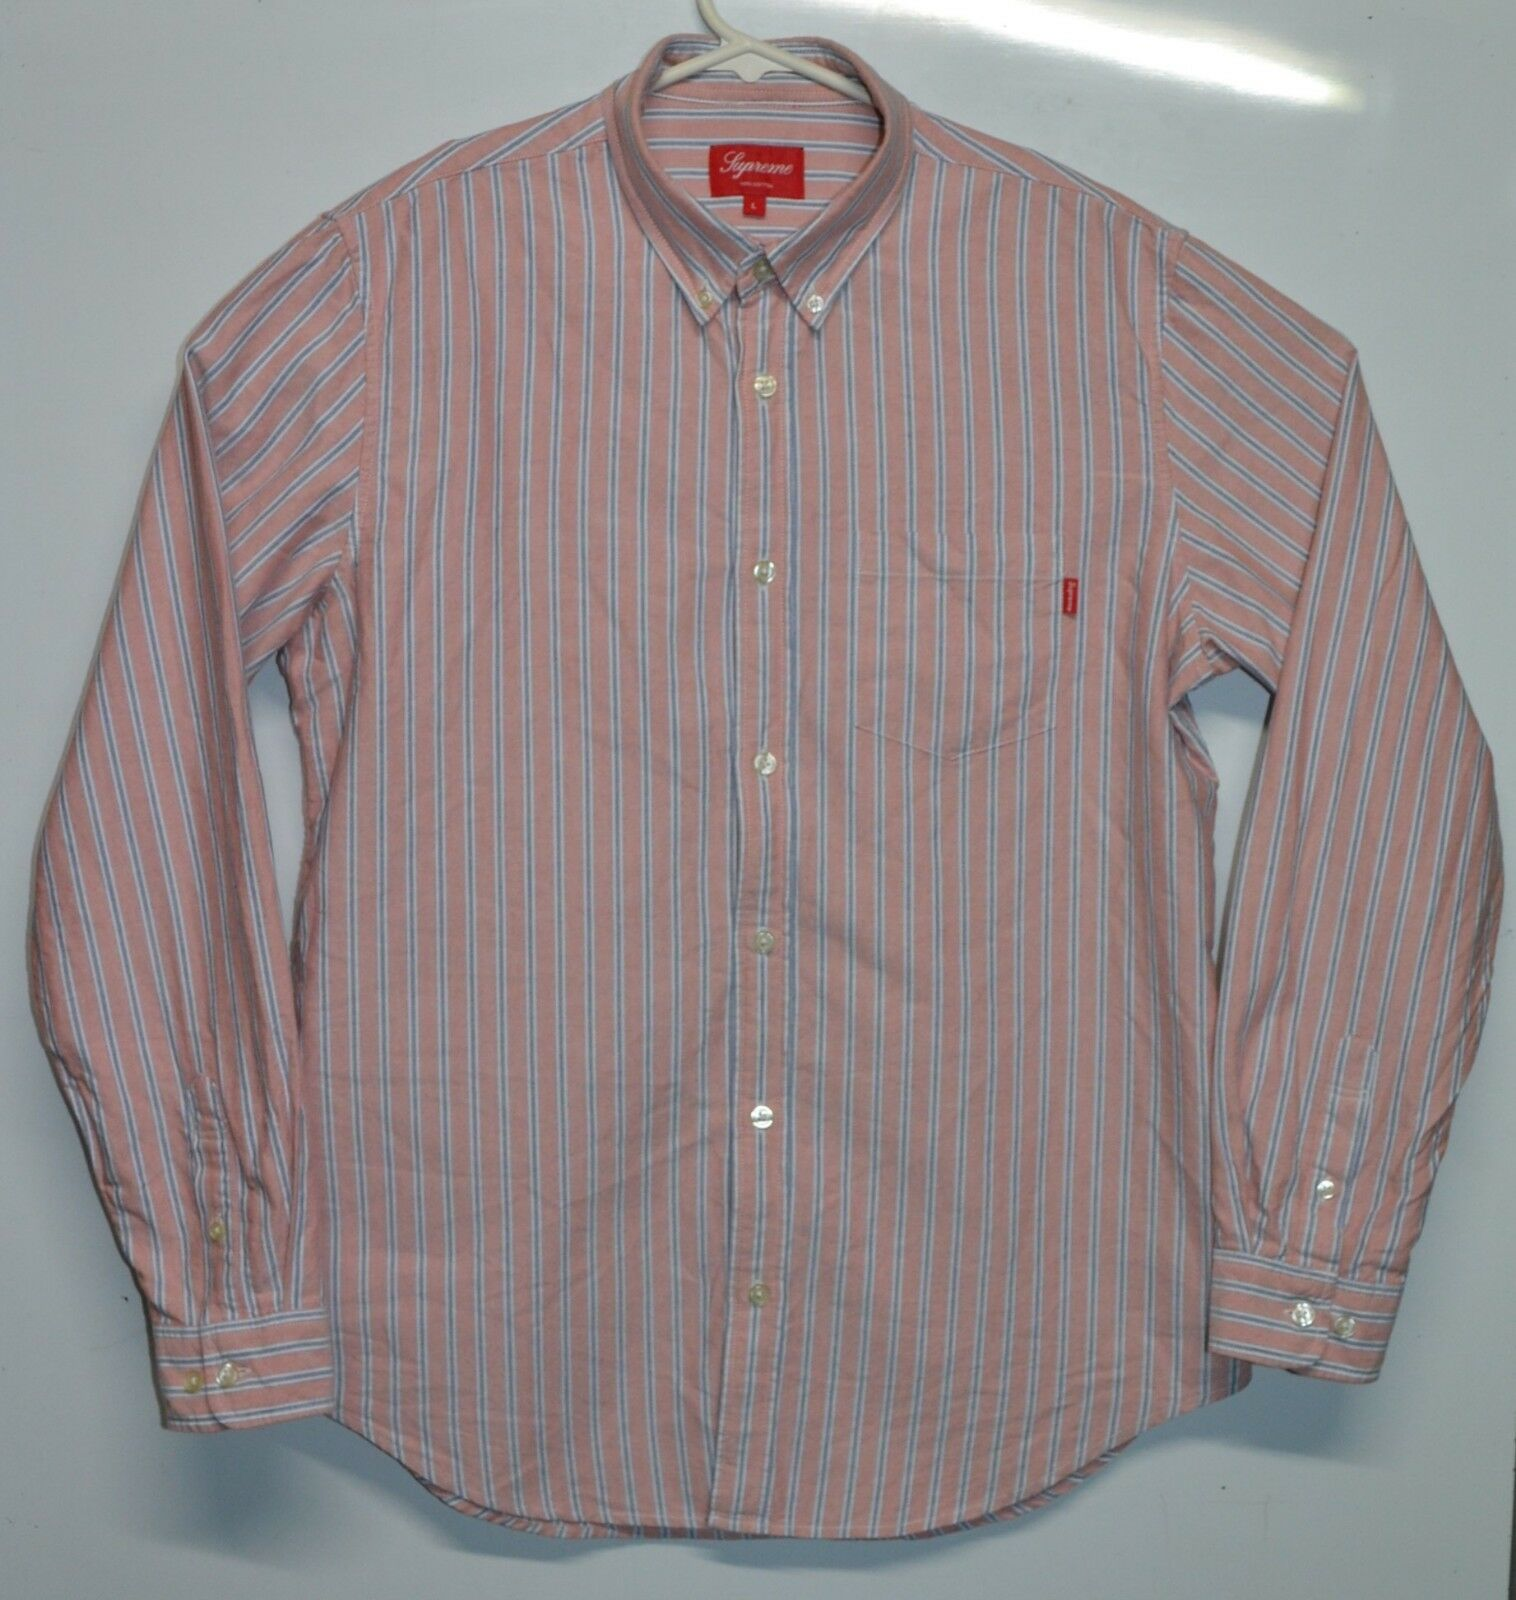 Supreme Faded Stripe Button Up Box Logo Oxford Shirt Size Large